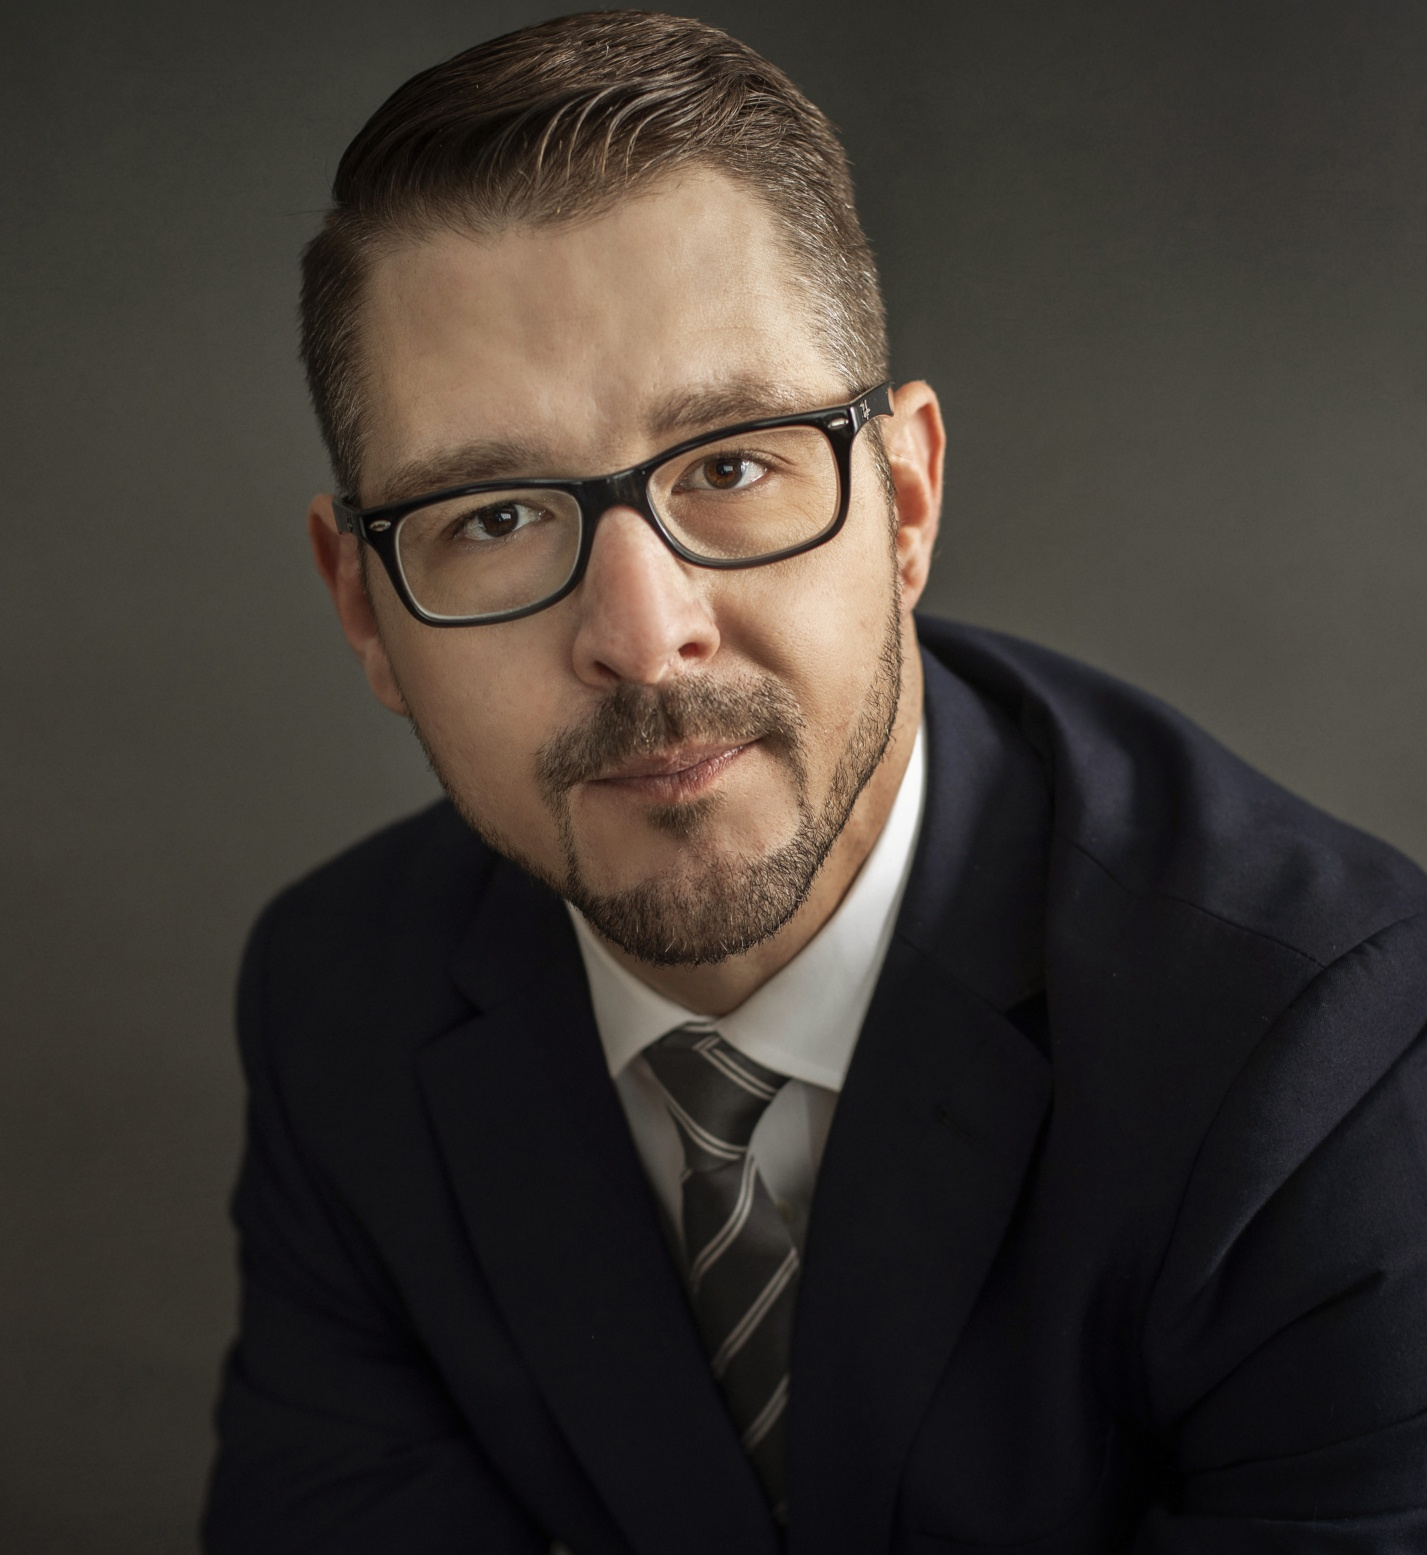 Headshot of Matthew R. Zwick, Esq. He is wearing a dark navy suit jacket, striped tie, white collared shirt and dark framed glasses.